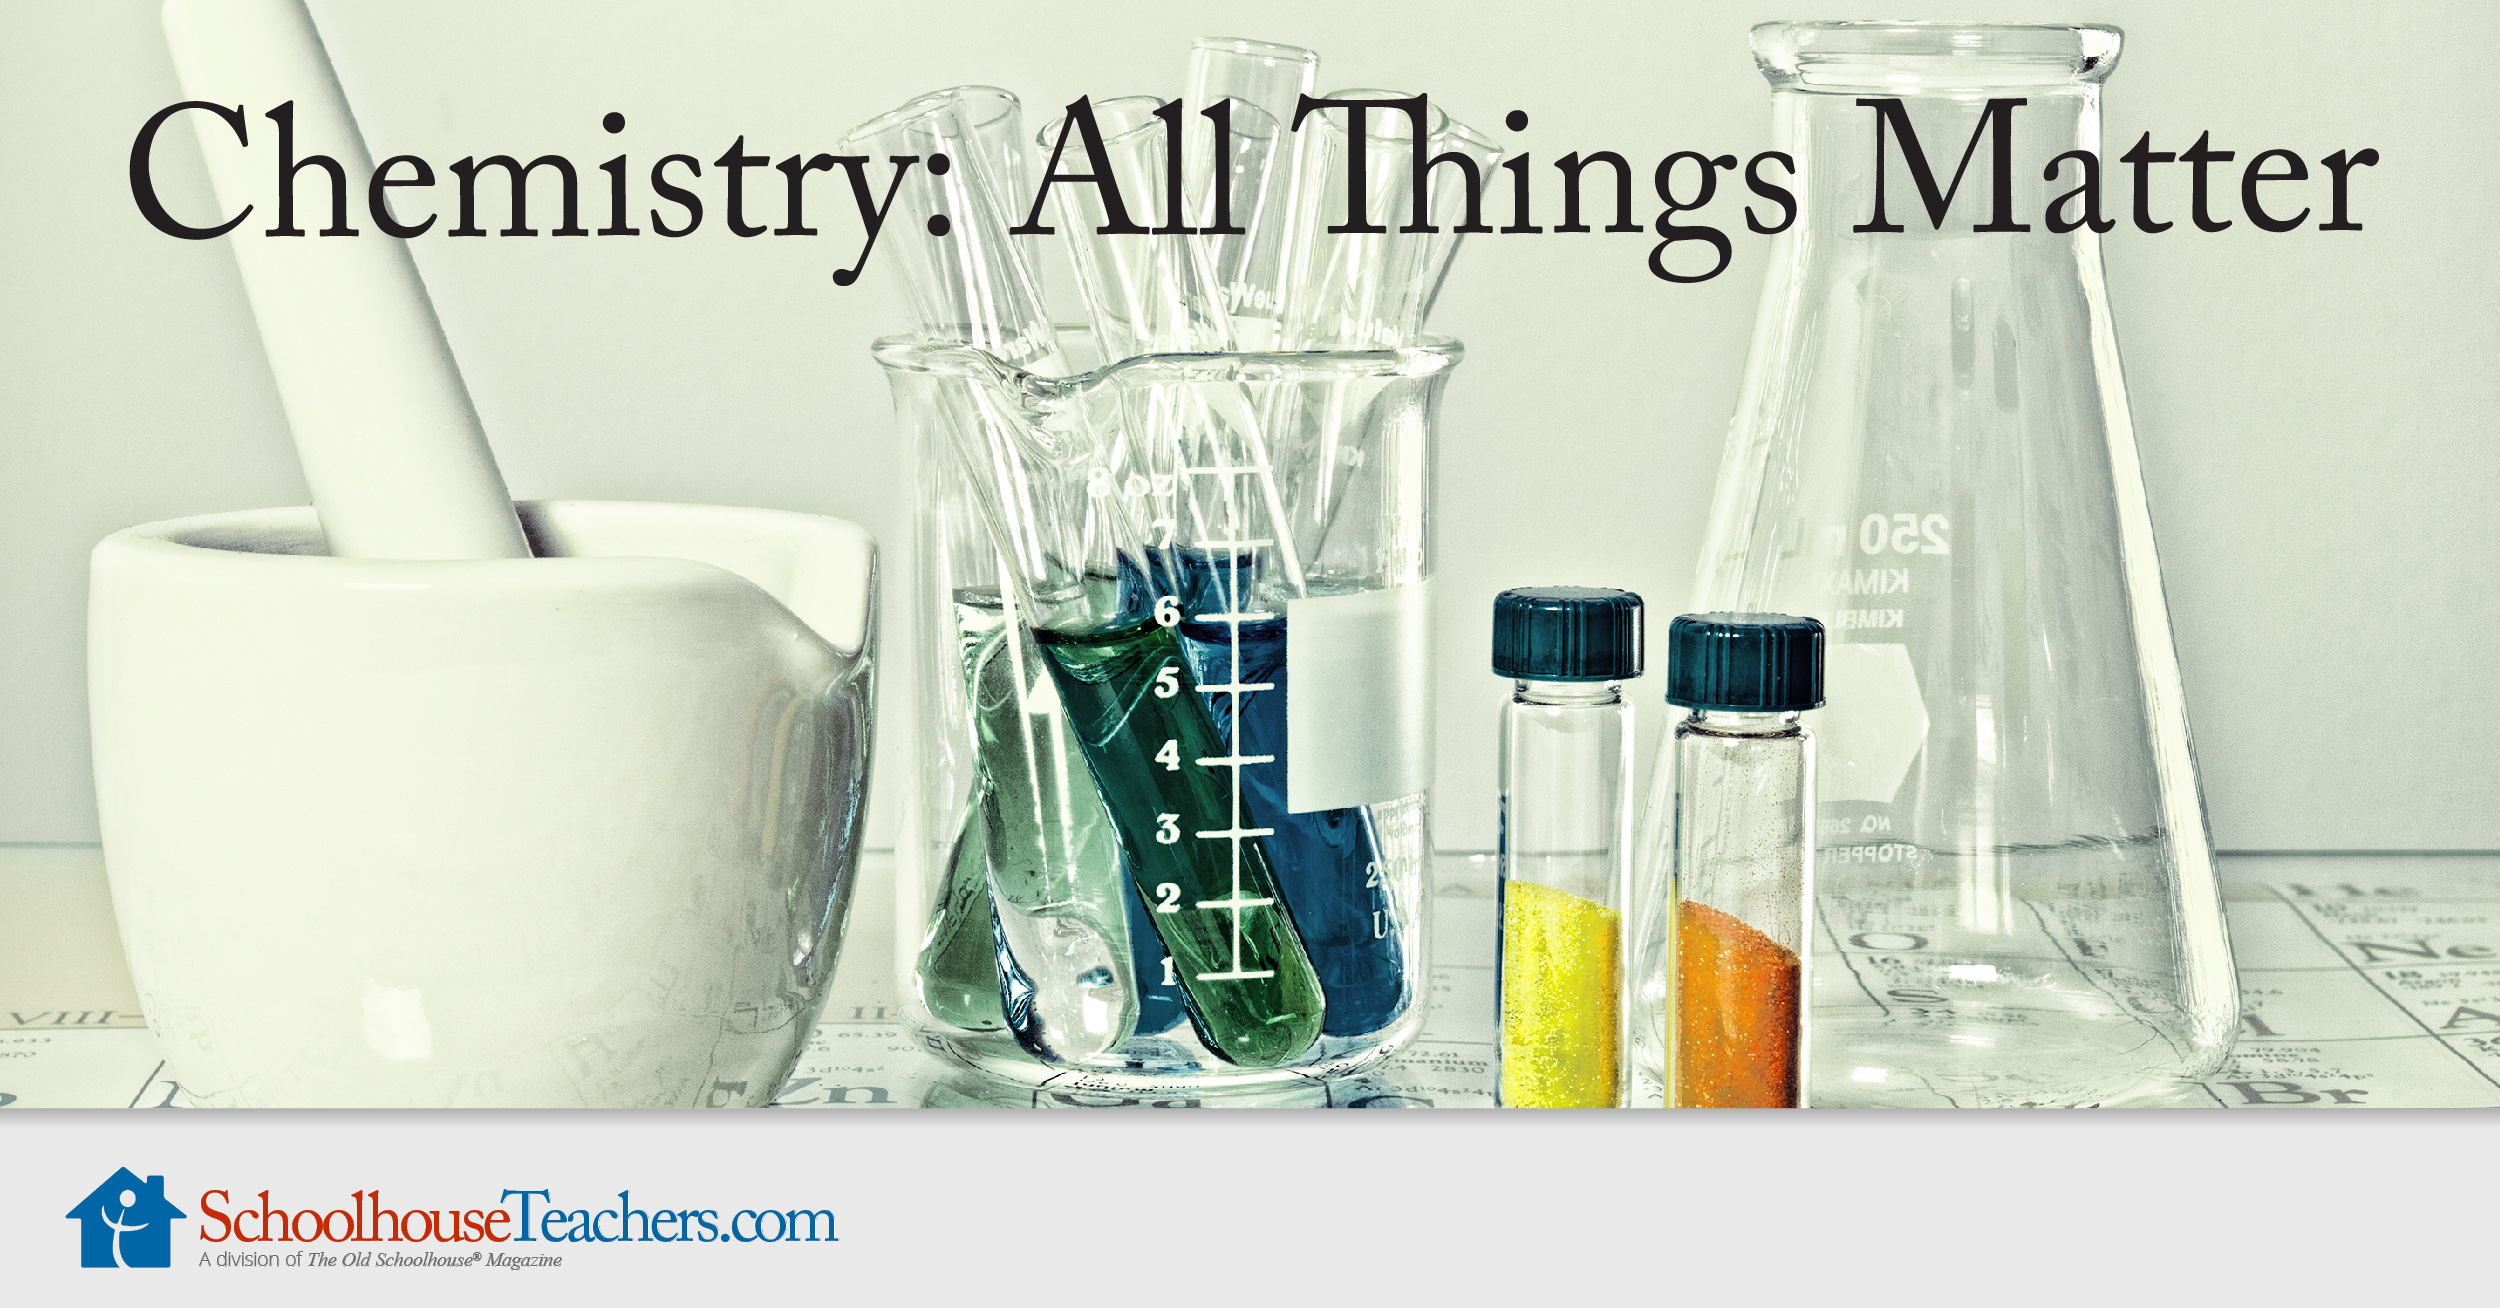 All Things Matter Homeschool Science Course